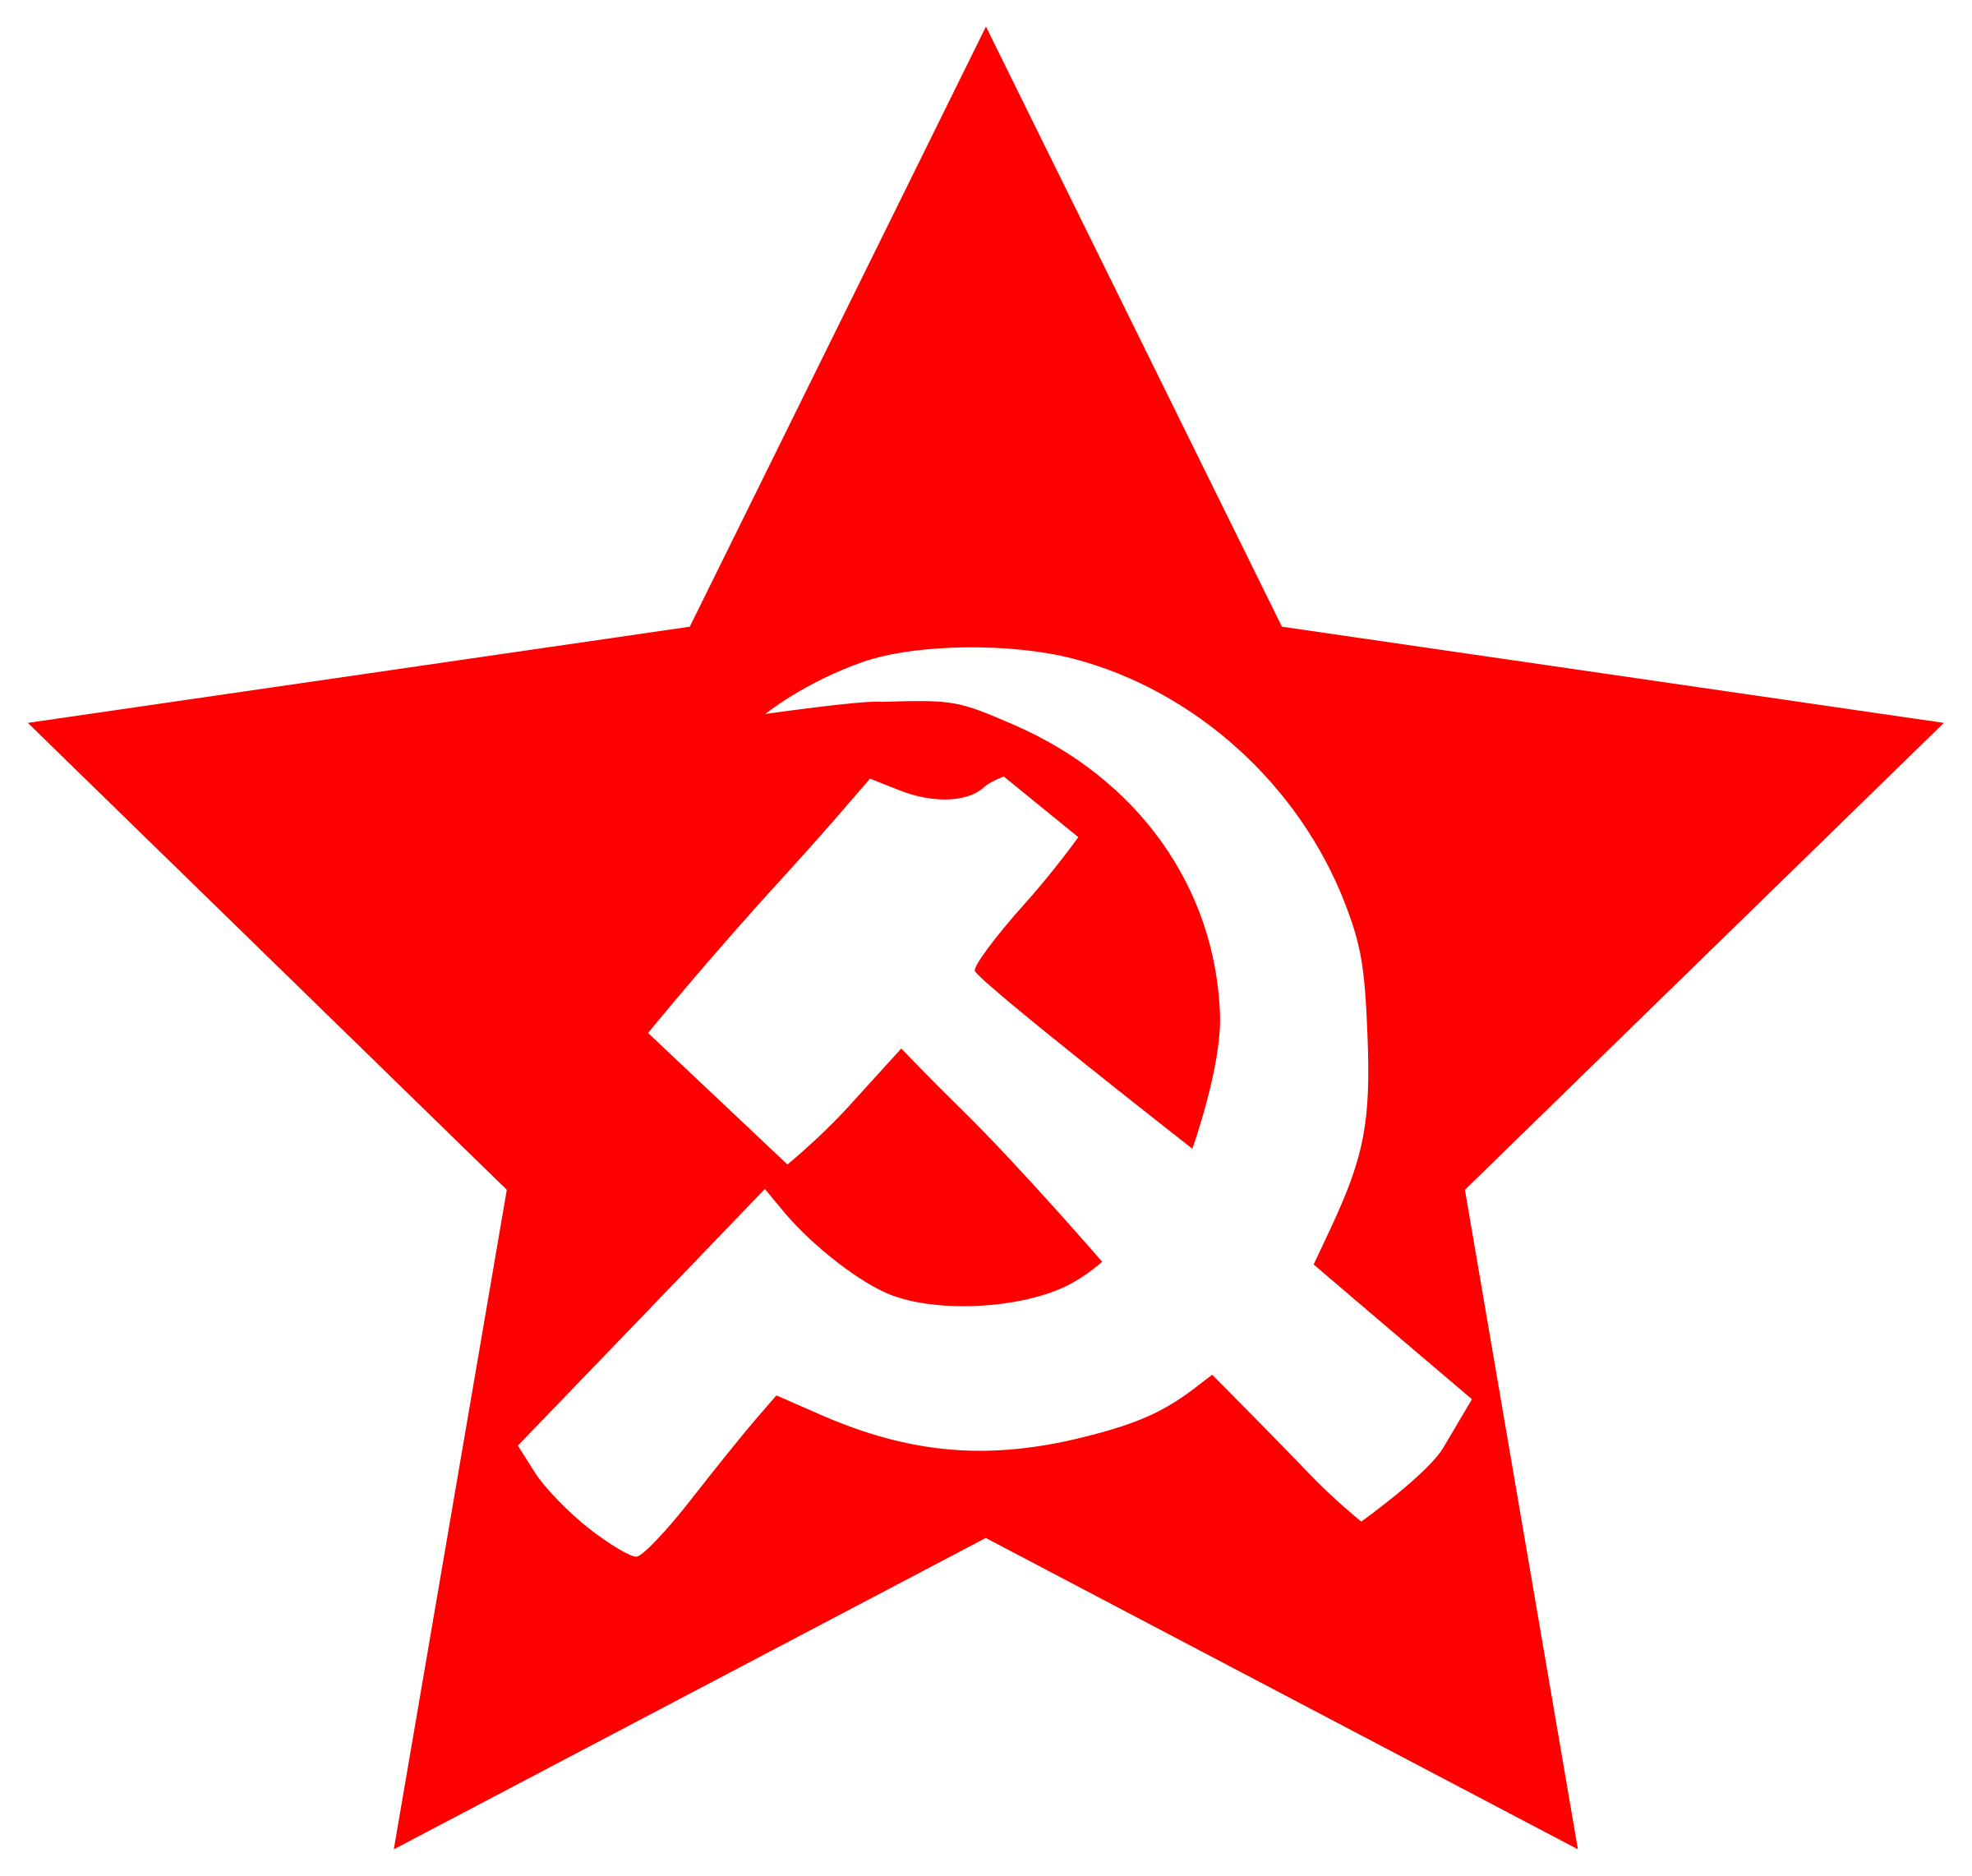 And sickle in star. Clipart hammer red hammer